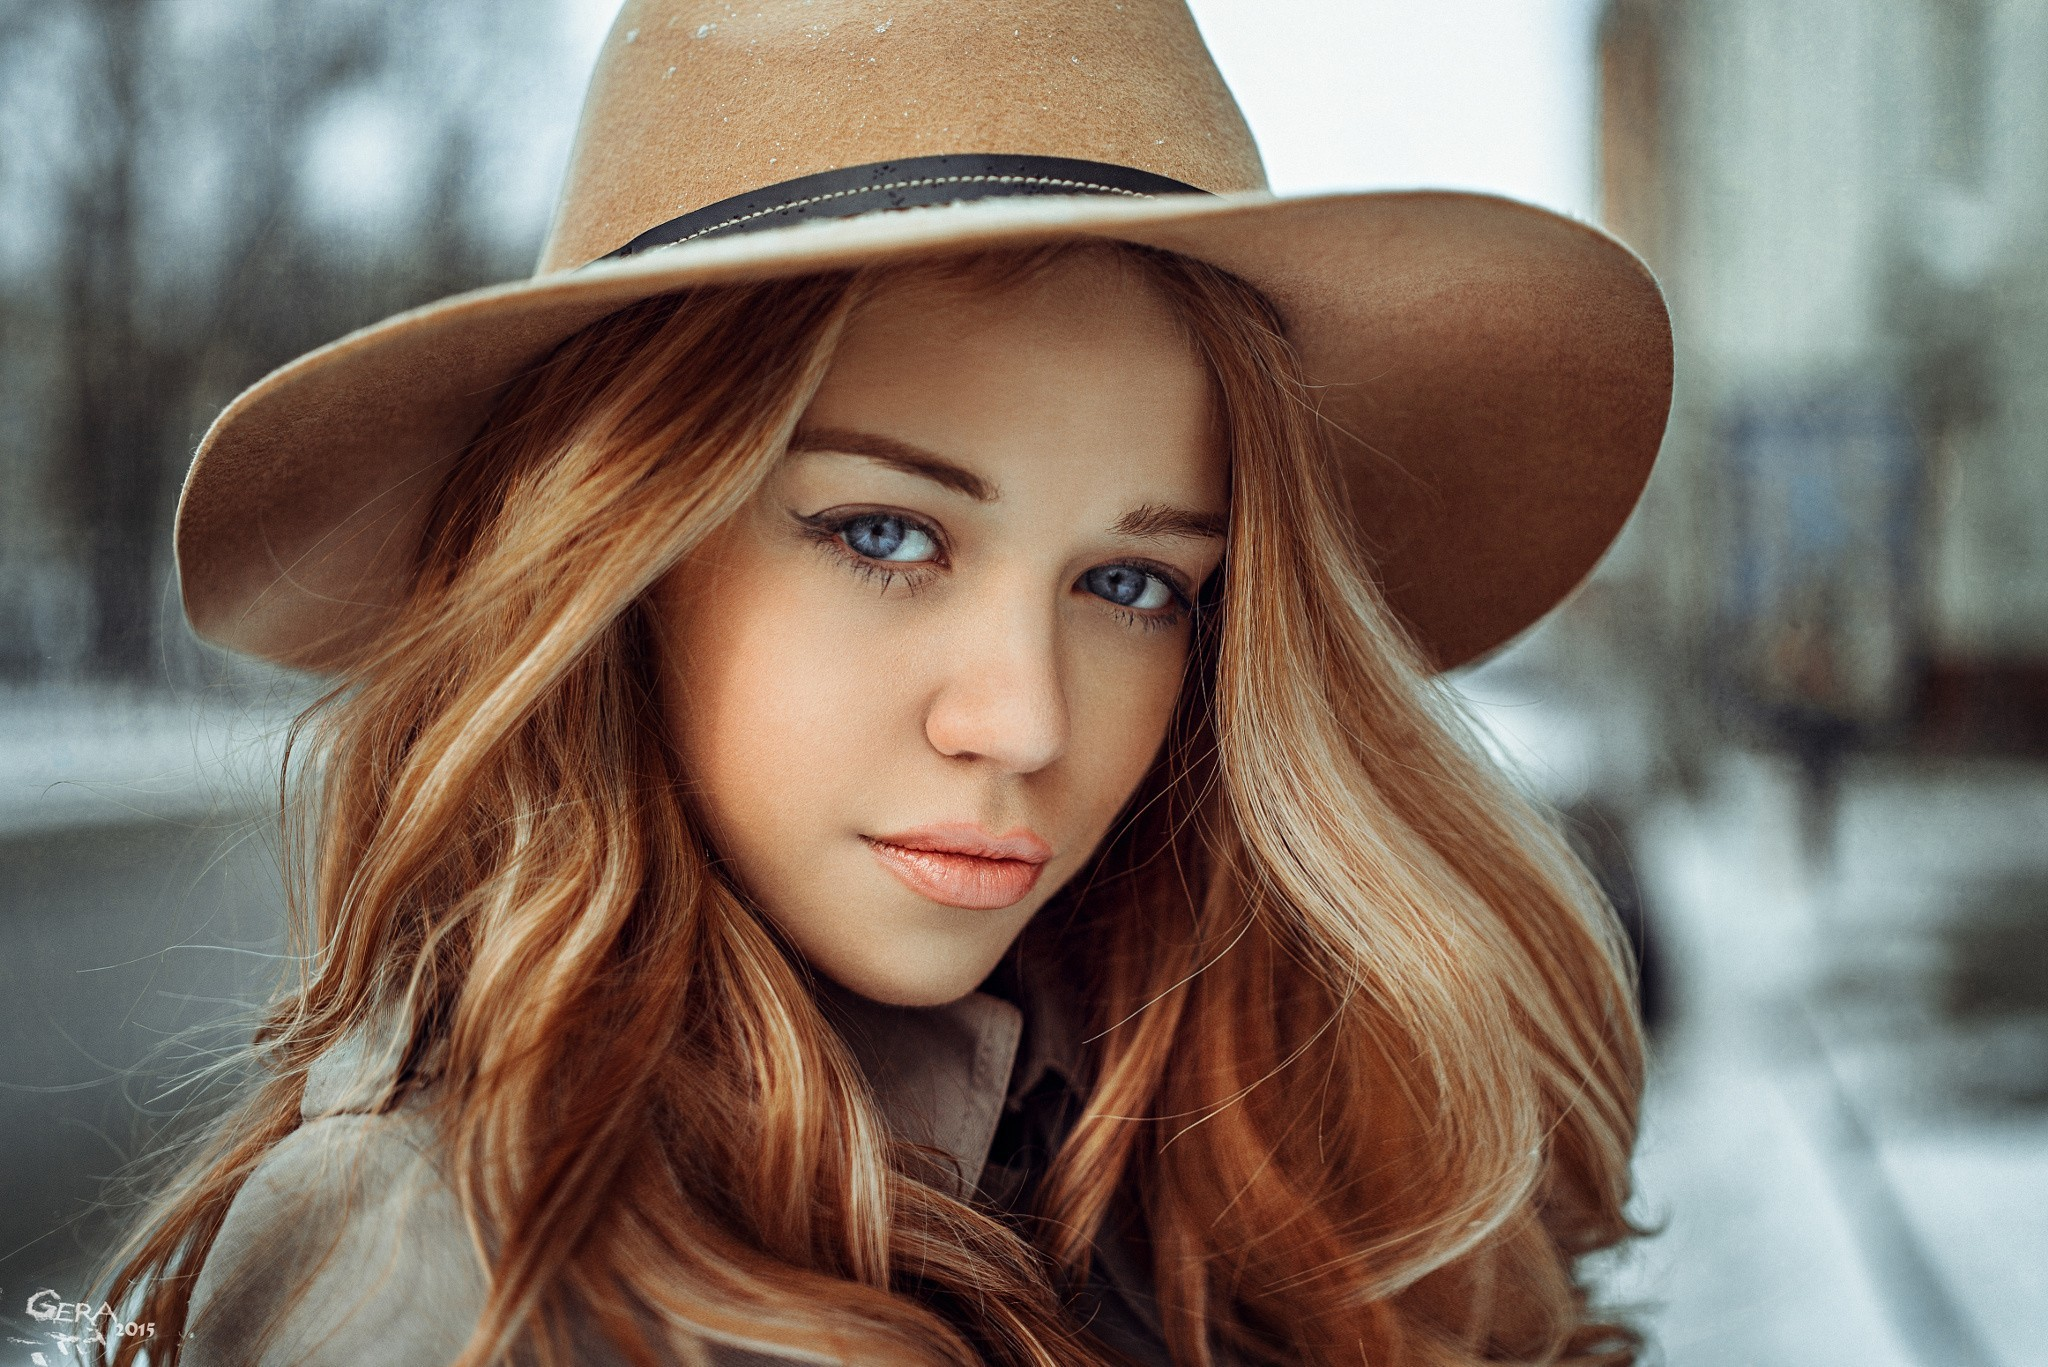 Res: 2048x1367, Blue-eyed girl in a brown cowboy hat